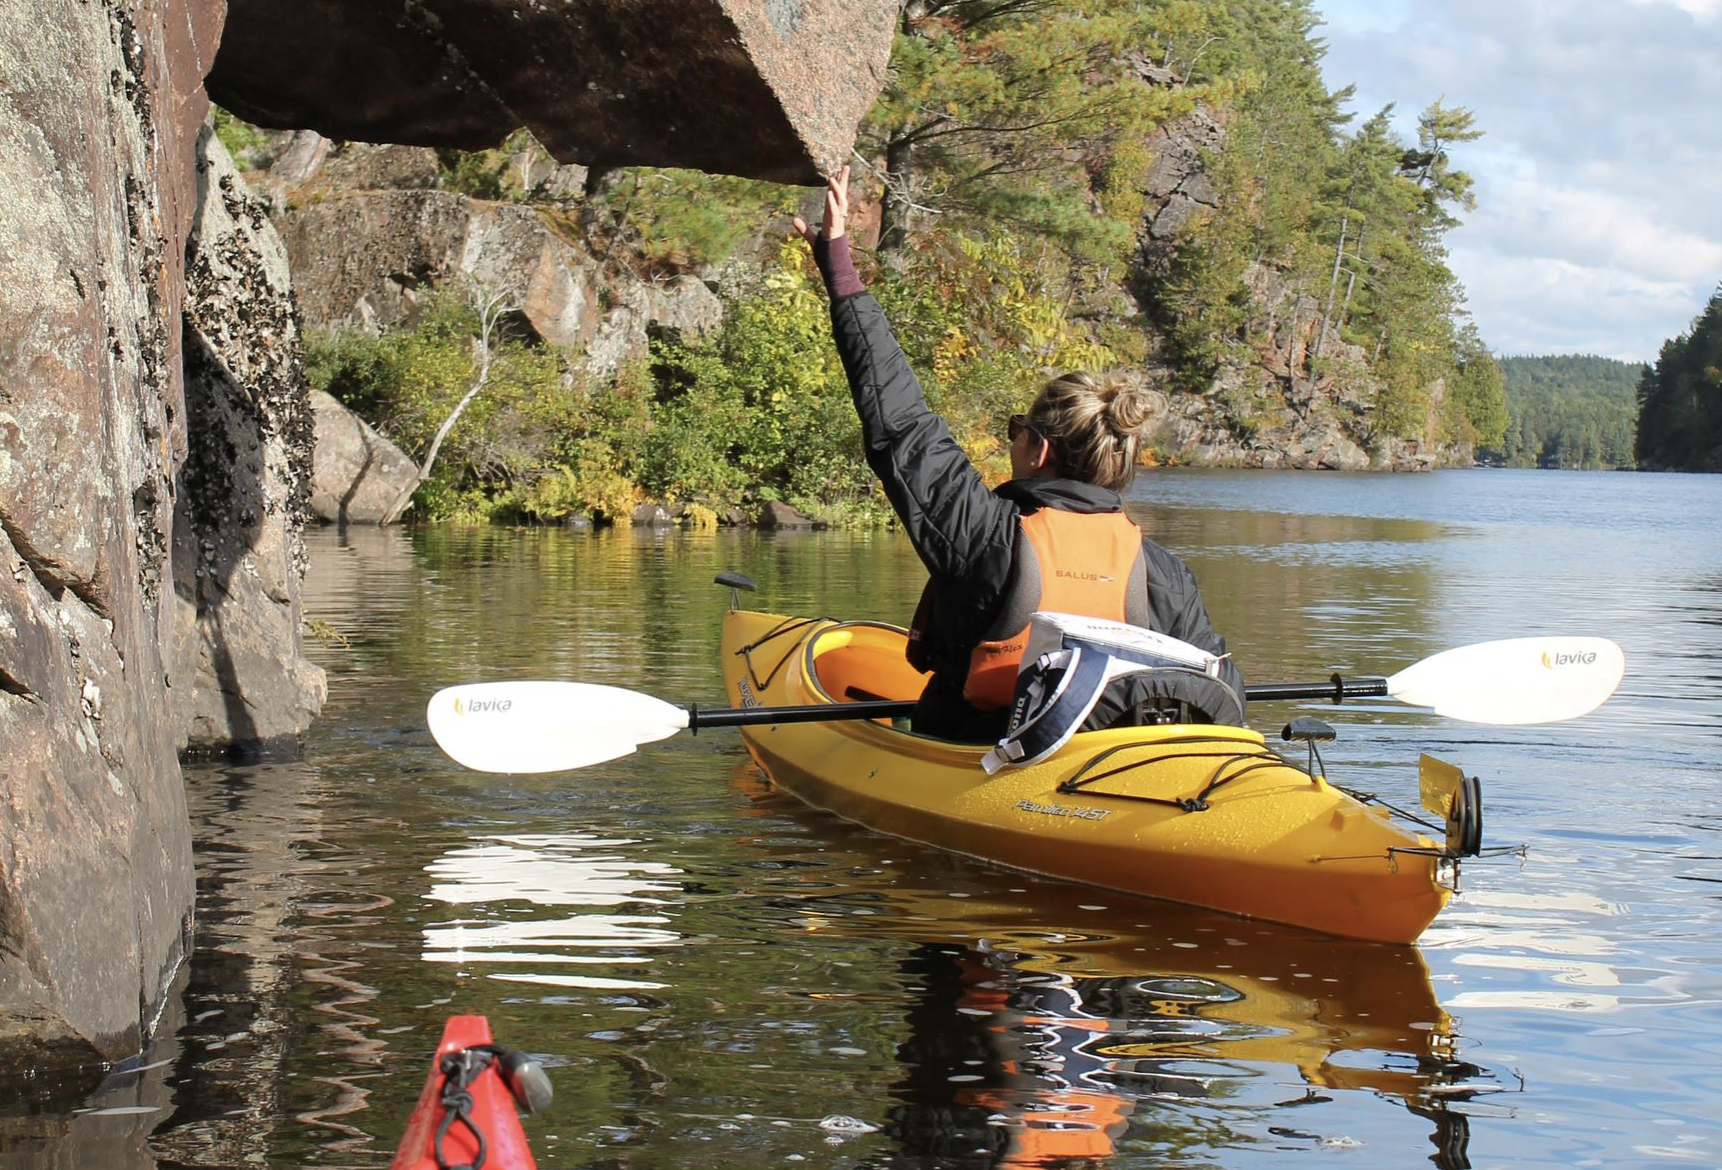 Shockwaves Paddle Adventures and First Aid North Bay